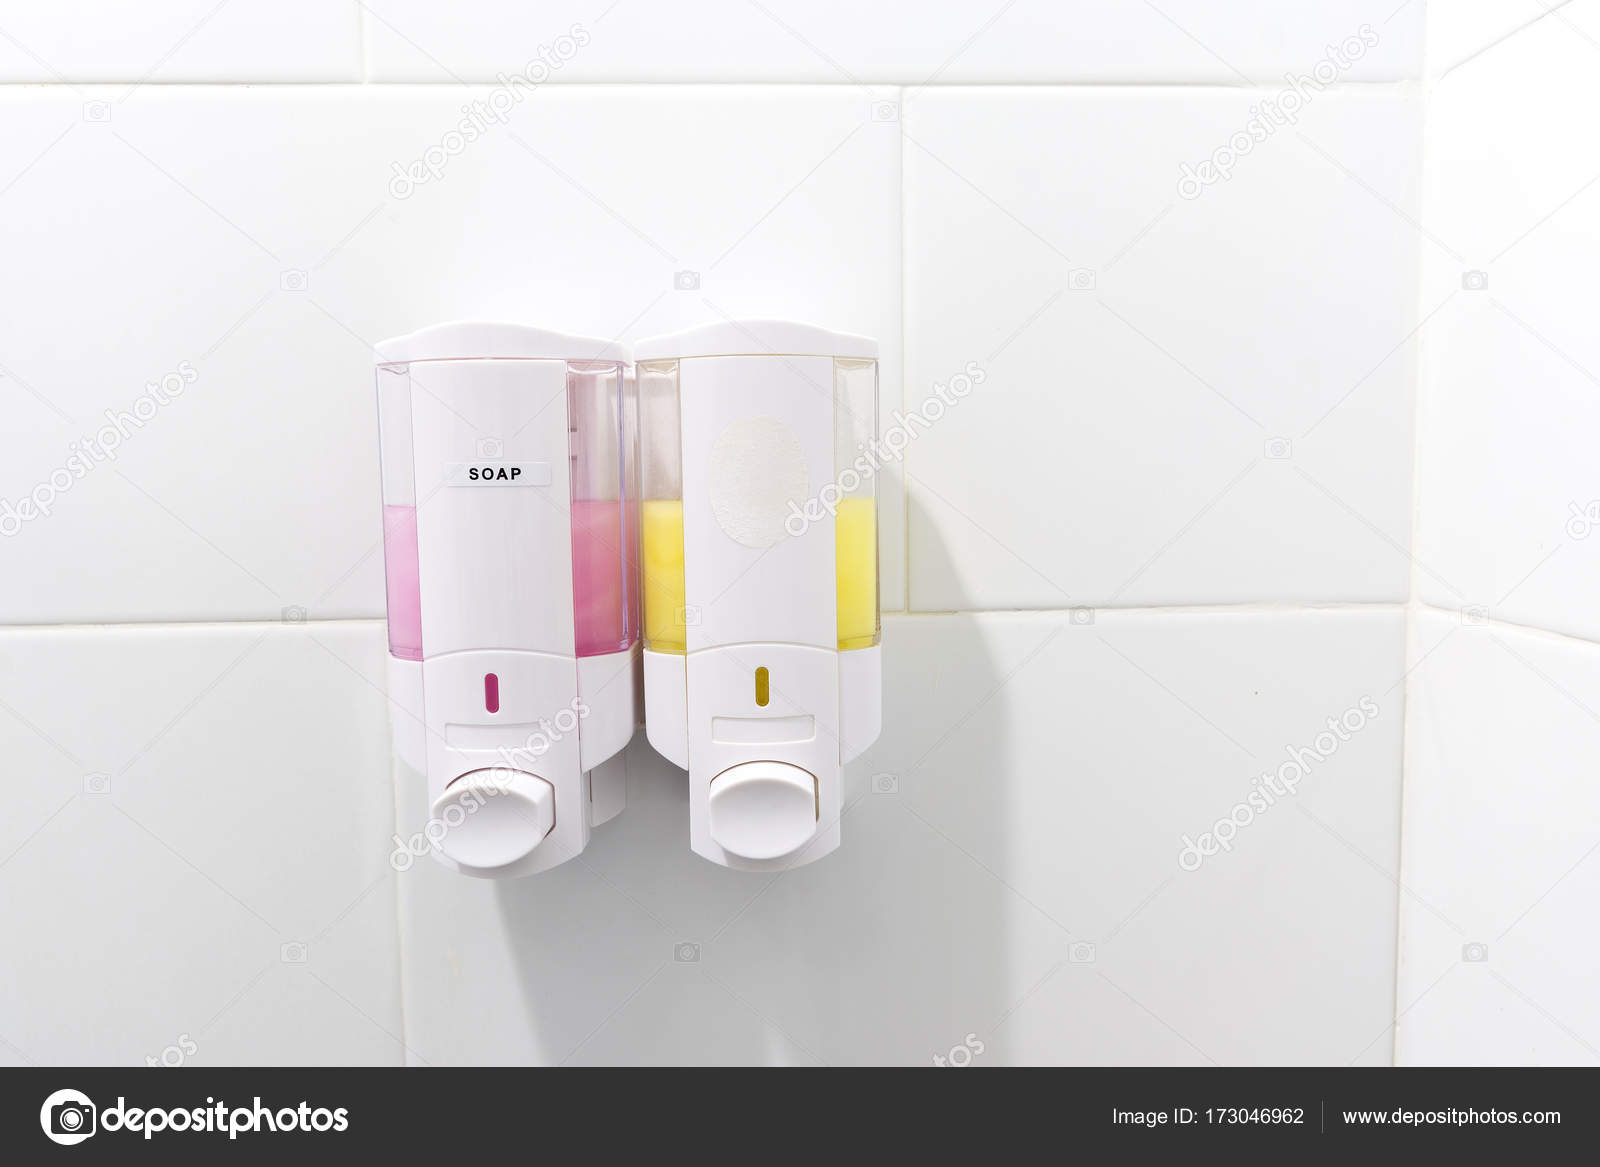 Bathroom Shower Dispensers Wall Mount Shower Pump Shampoo And Soap Dispensers In Bathroom